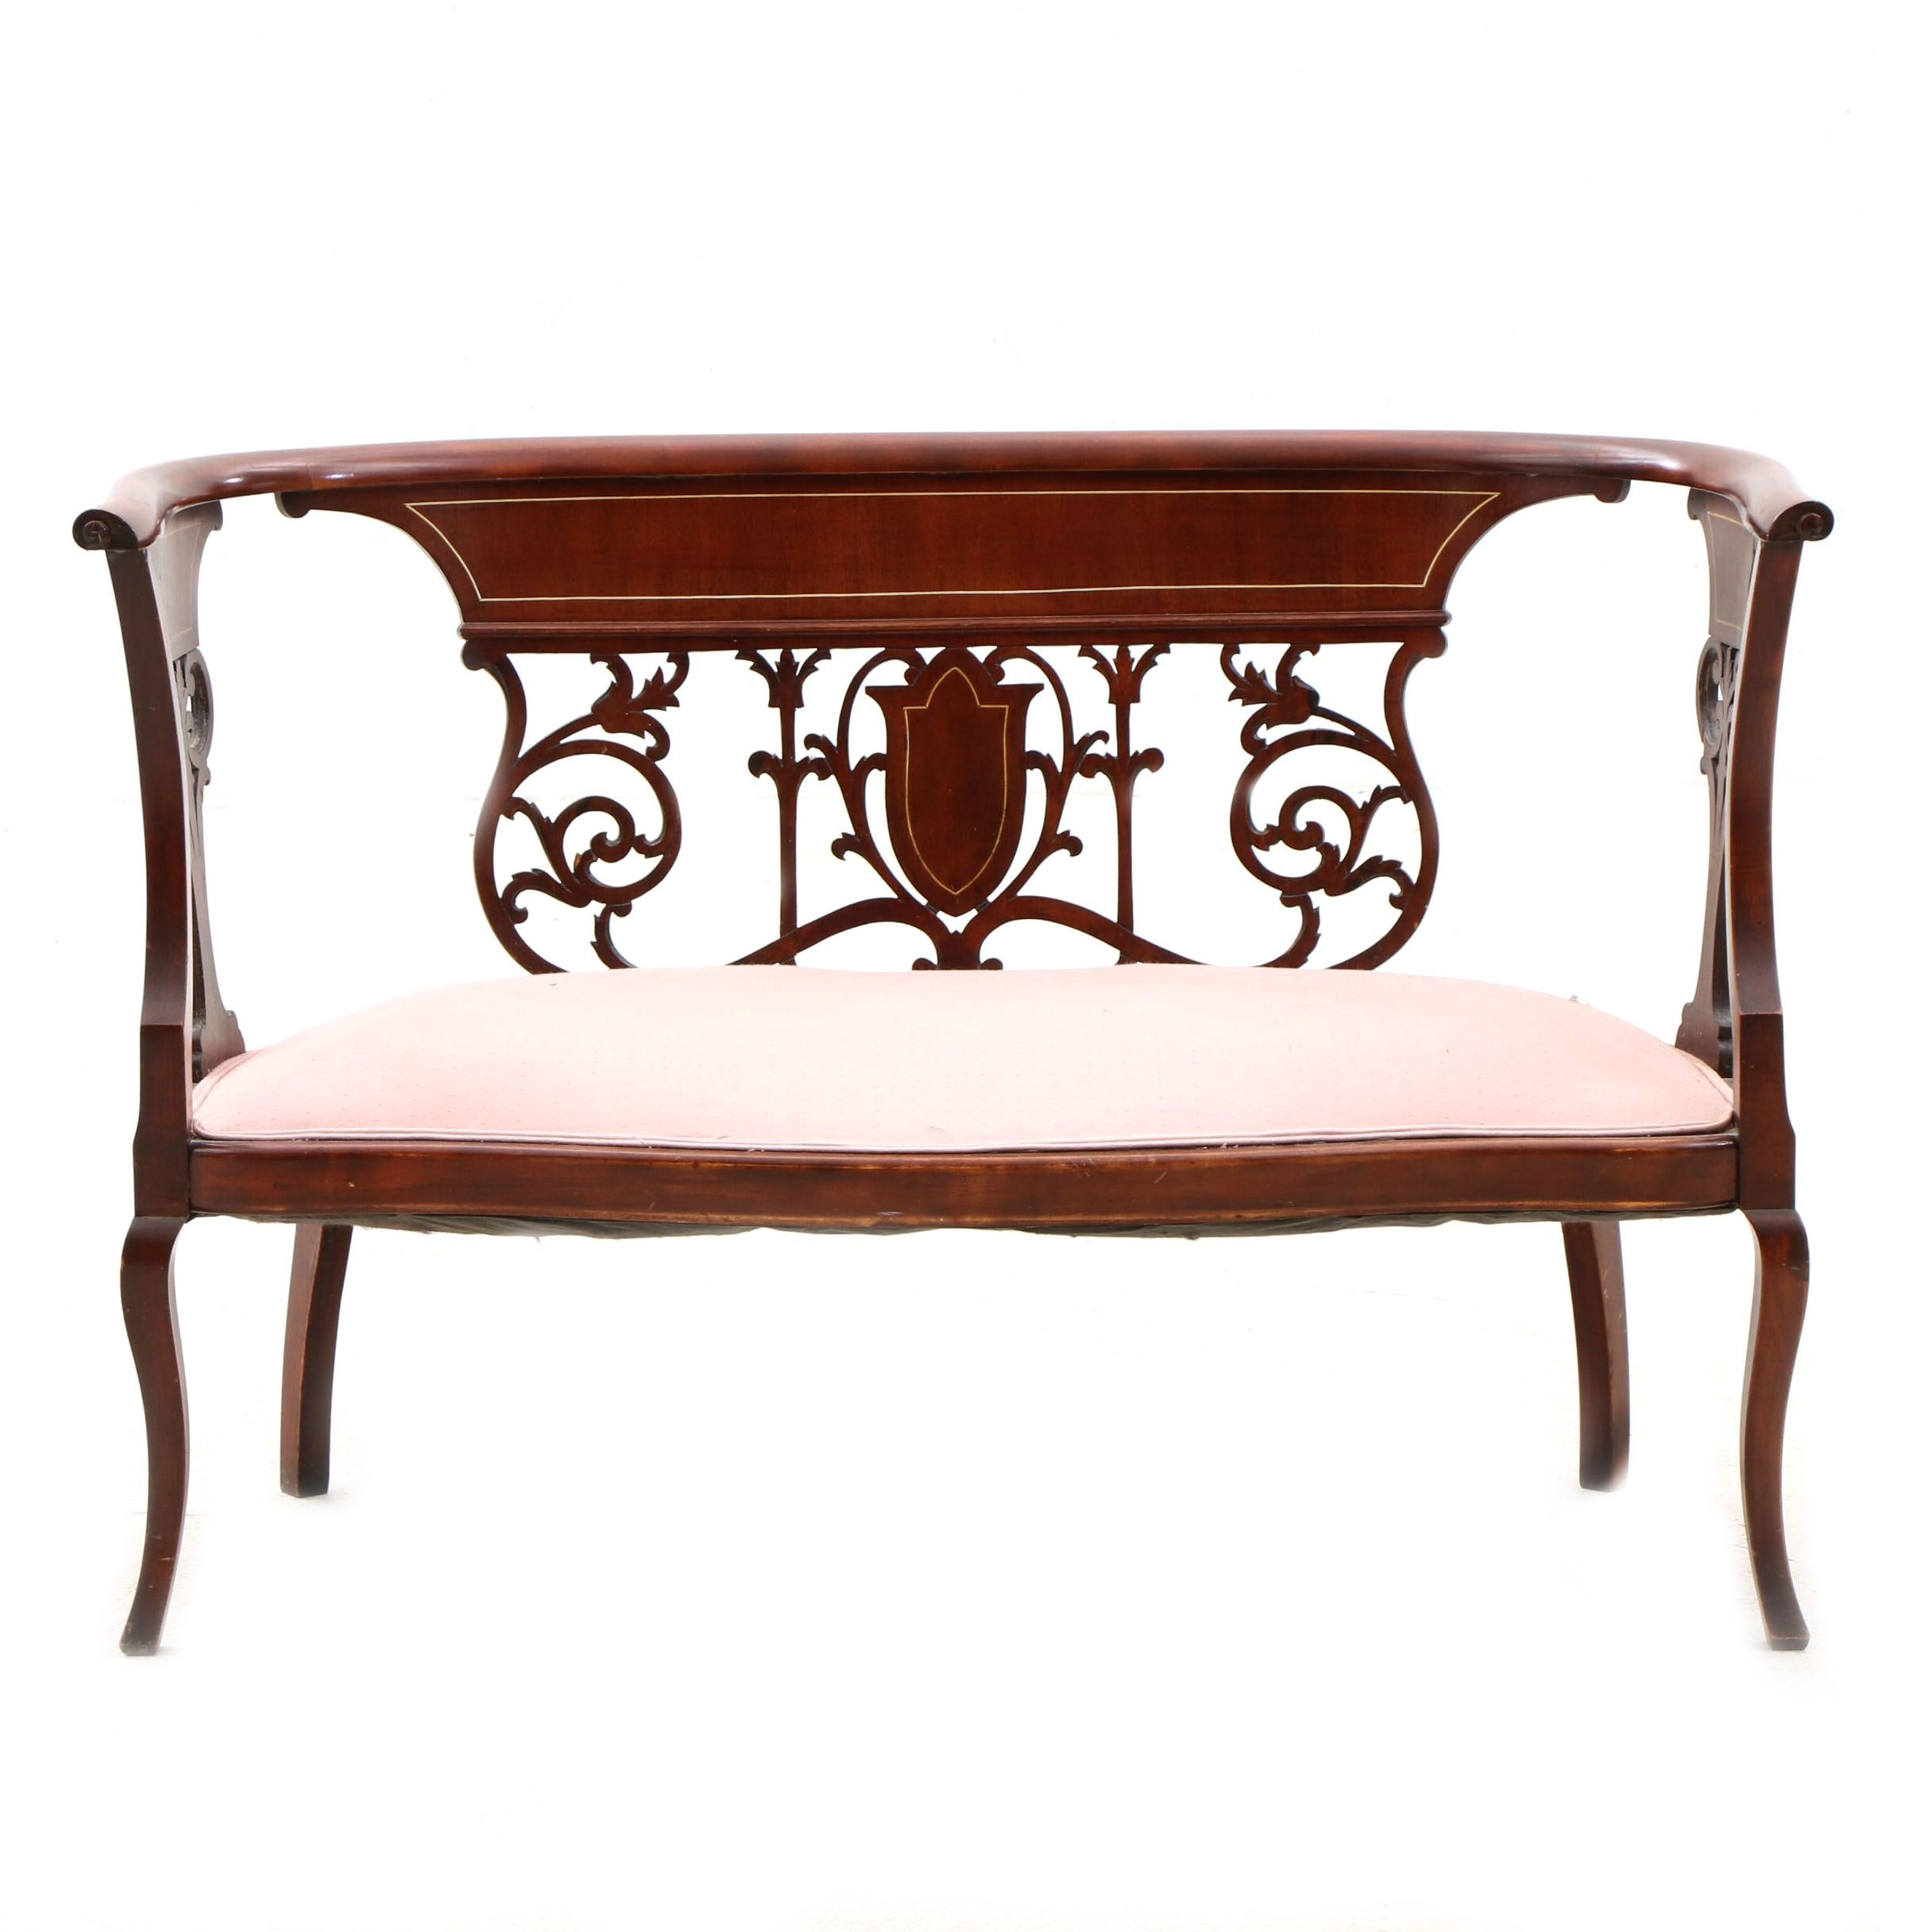 Colonial Revival Mahogany and Birch Settee With Bone Inlays